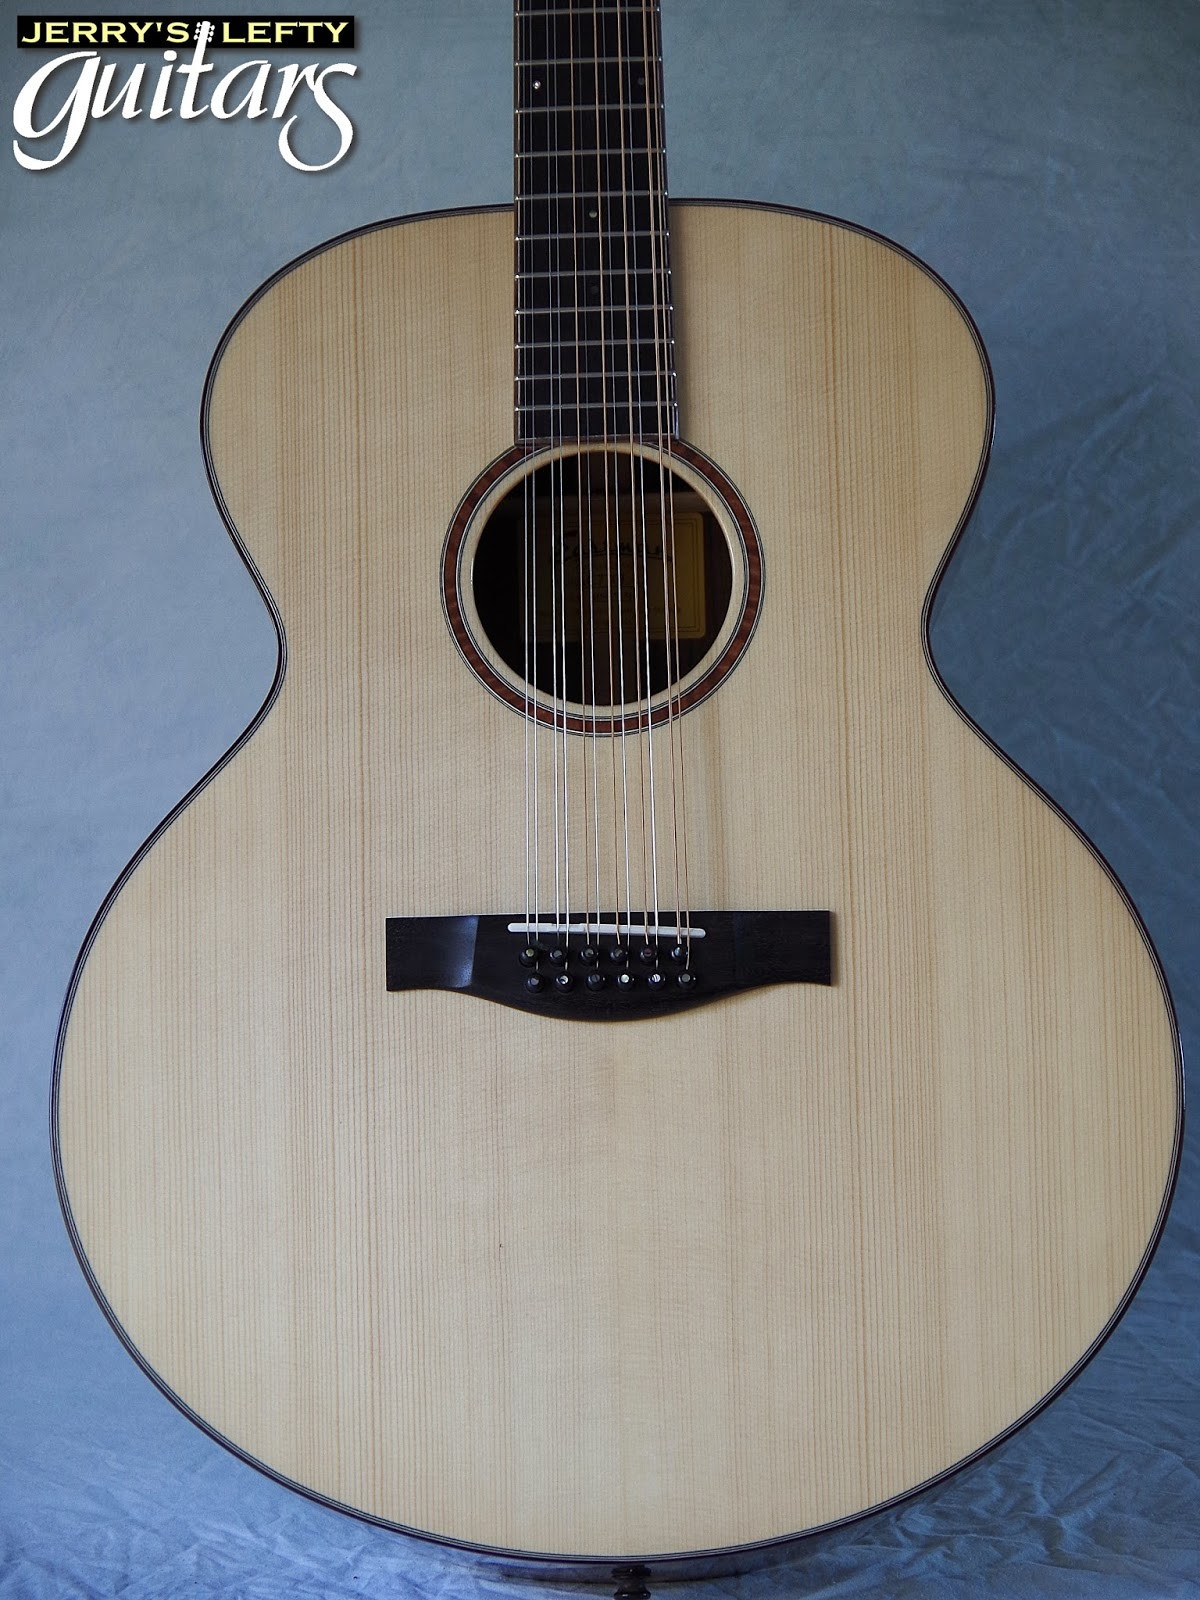 jerry 39 s lefty guitars newest guitar arrivals updated weekly eastman ac730 12 string left. Black Bedroom Furniture Sets. Home Design Ideas